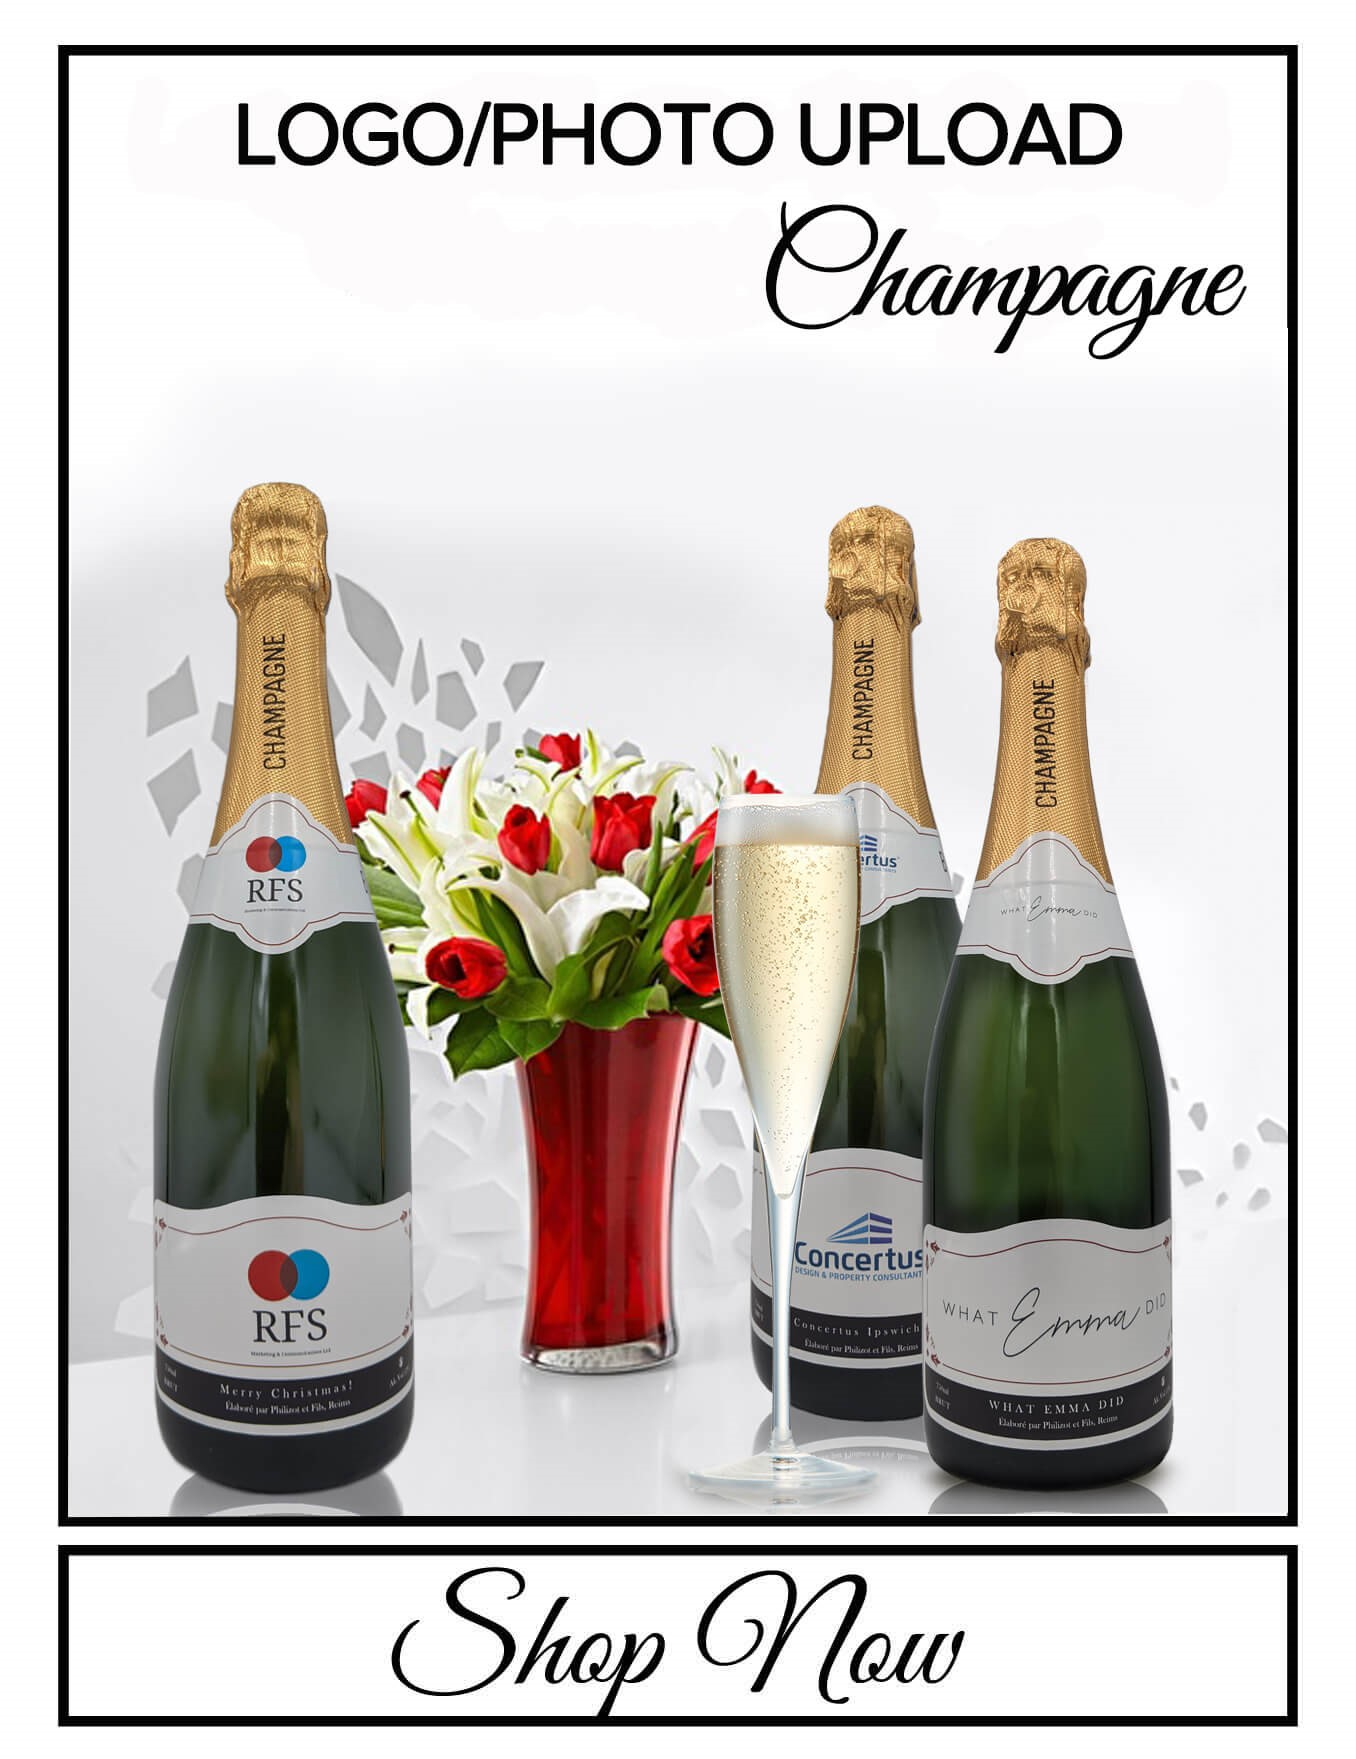 personalised Champagne bottle label delivery uk sparkling winelogo photo gift present